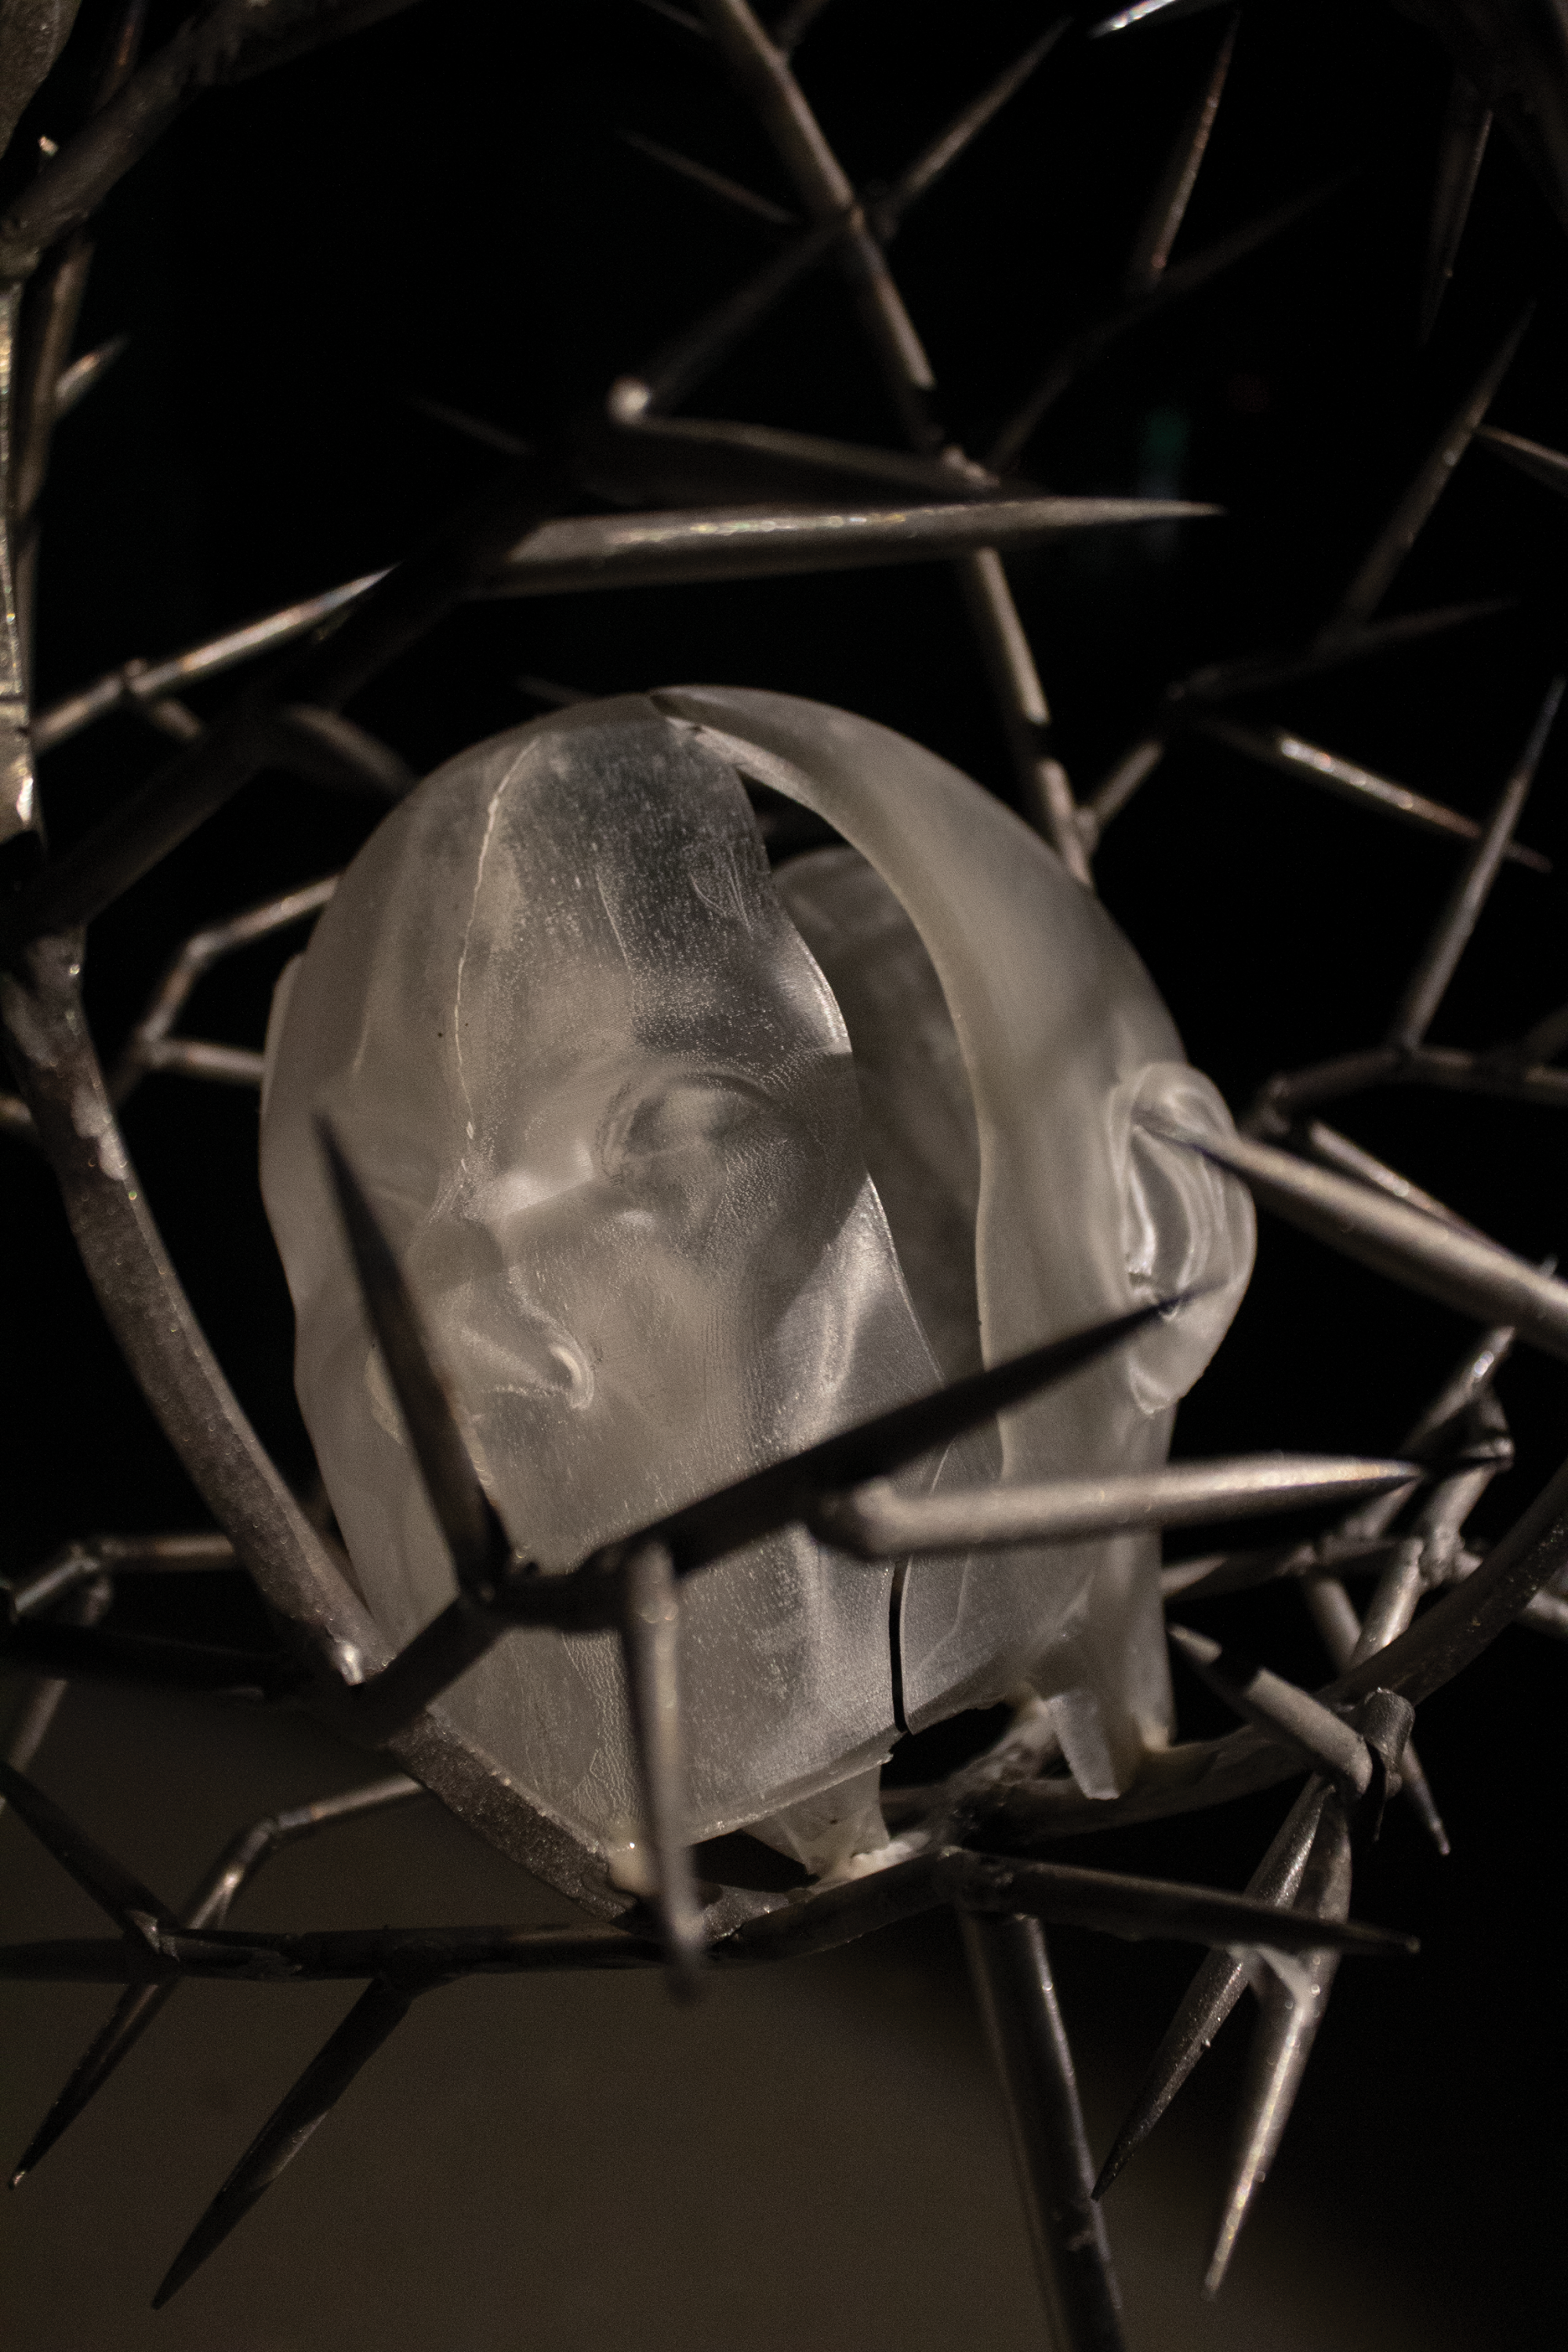 This work includes two standing pieces on the ground that are made of steel and liquid plastic. They are slightly tilted with spiky structures on the top. Inside of the structure, each has a casted human head that is made of plastic.